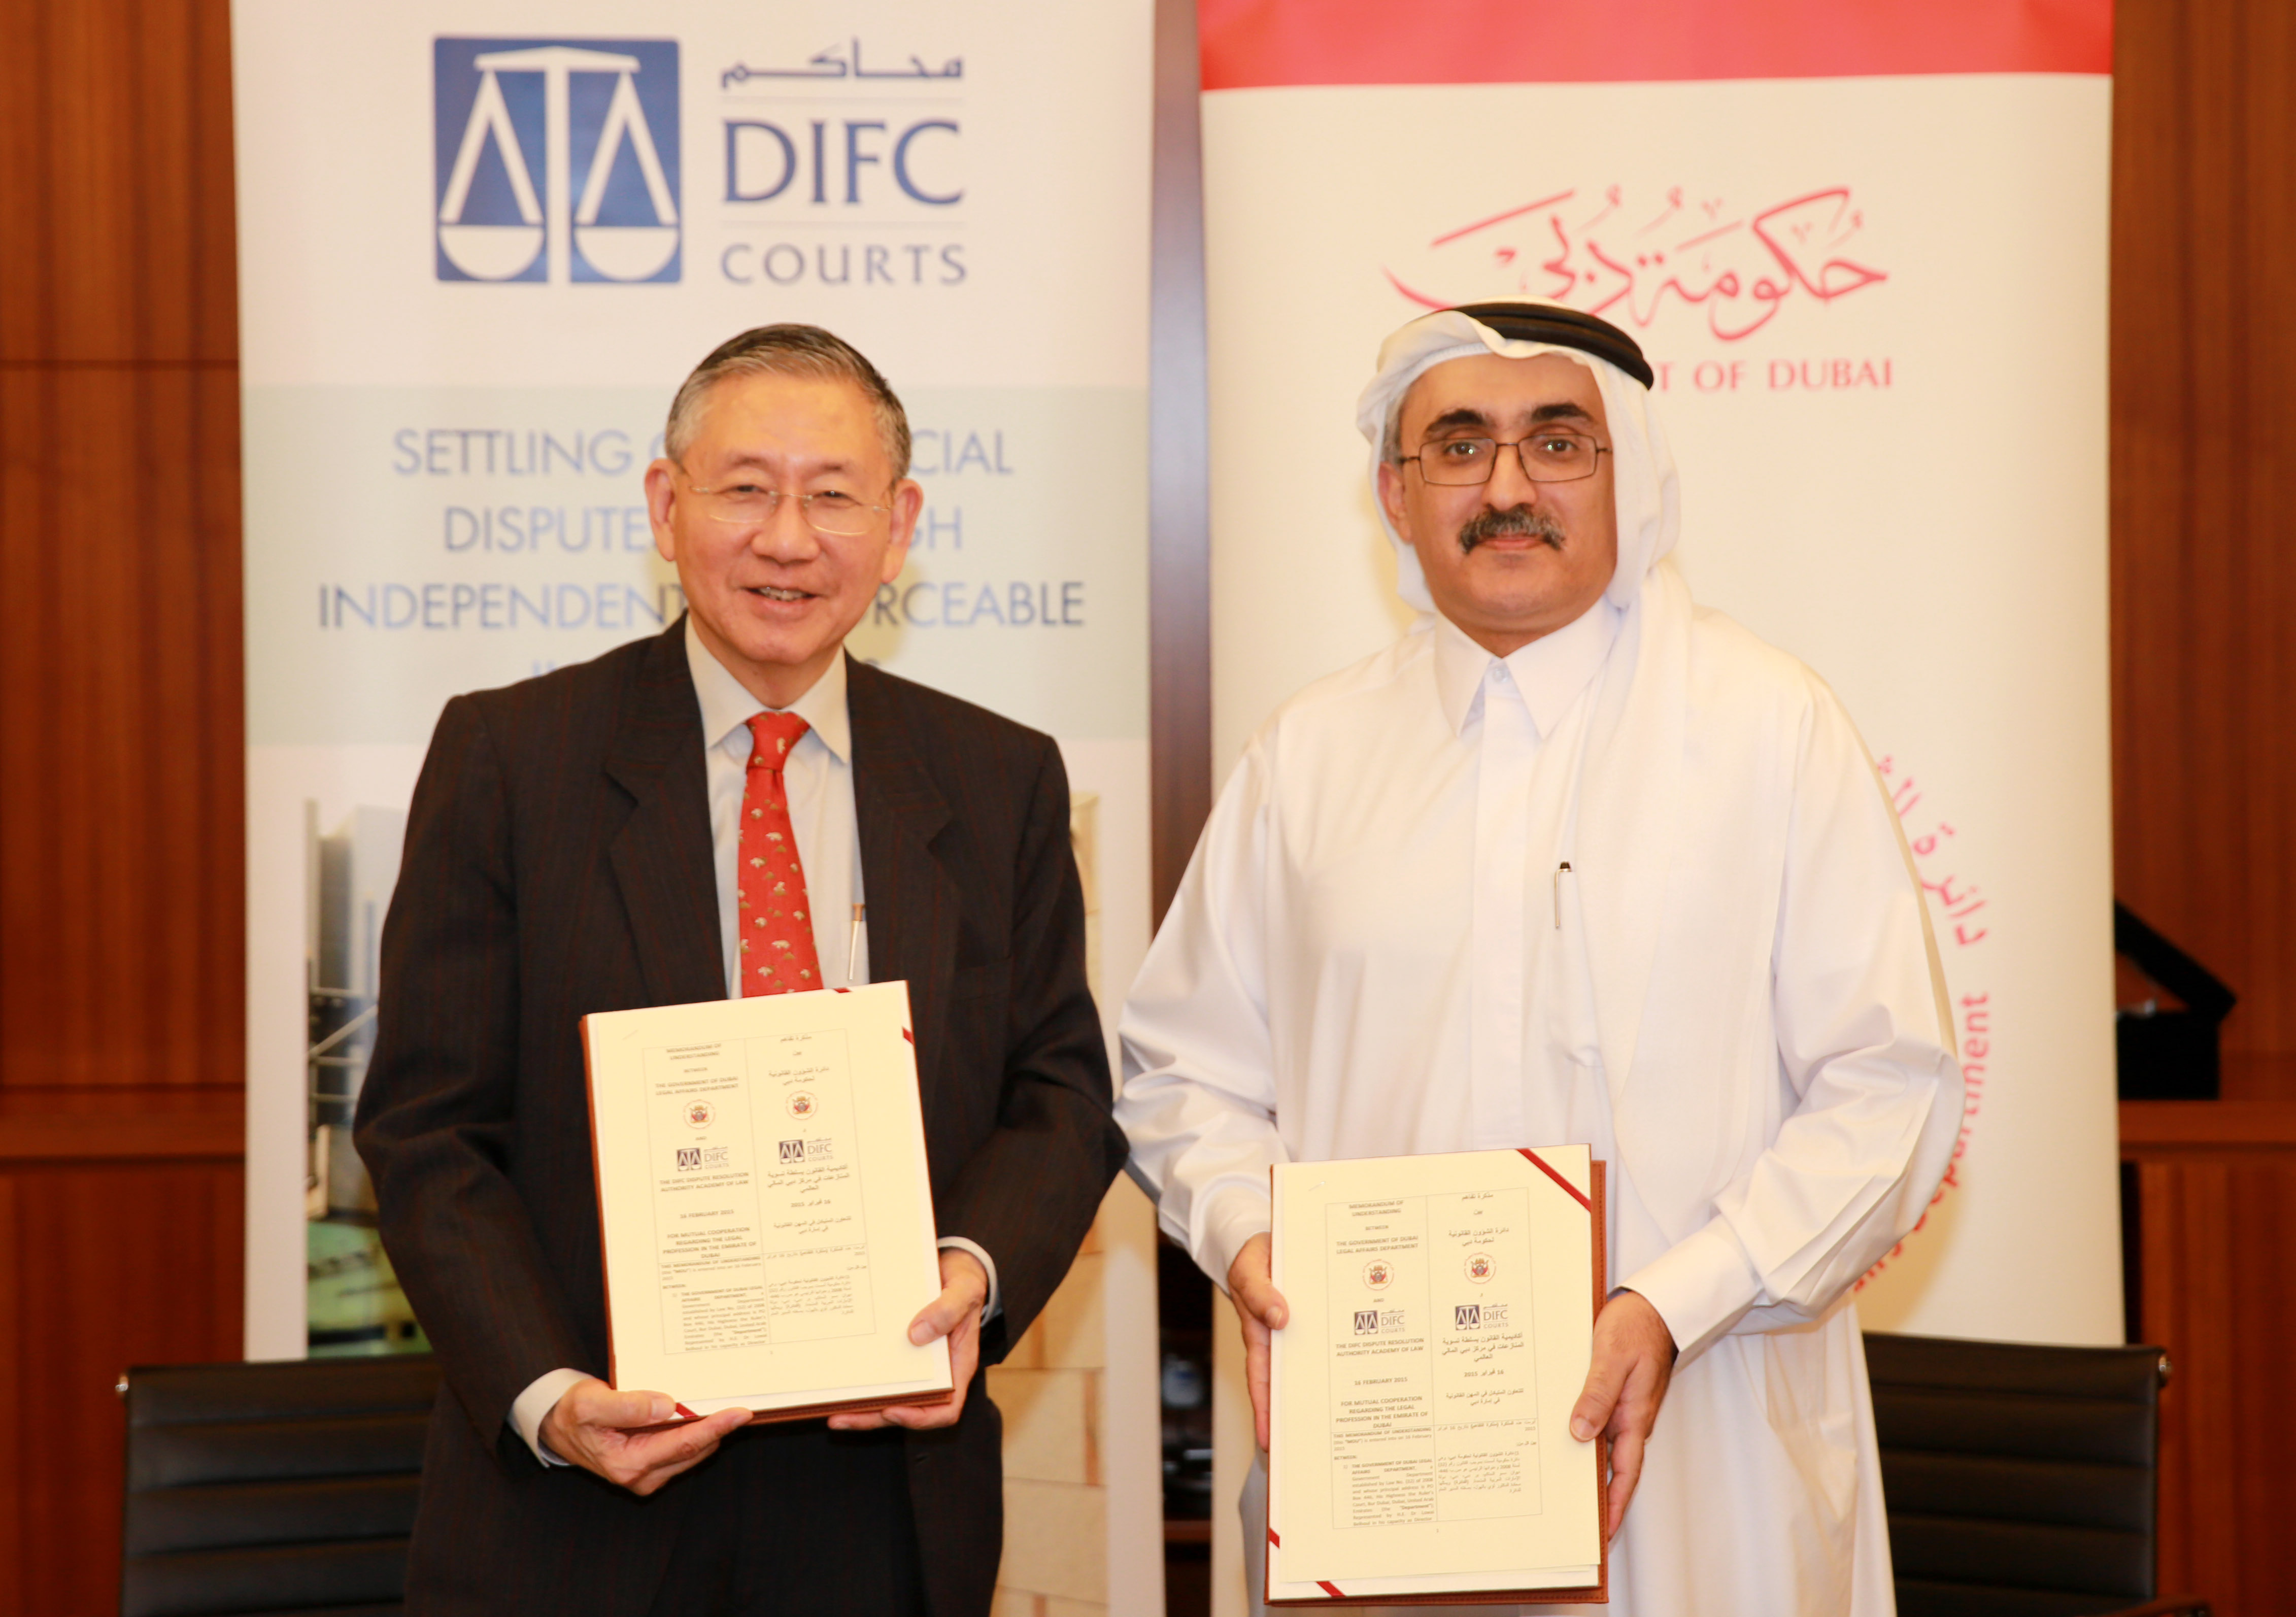 MOU Signed Between Legal Affairs Department Signs And The Dubai International Financial (DFIC) Courts Academy of Law